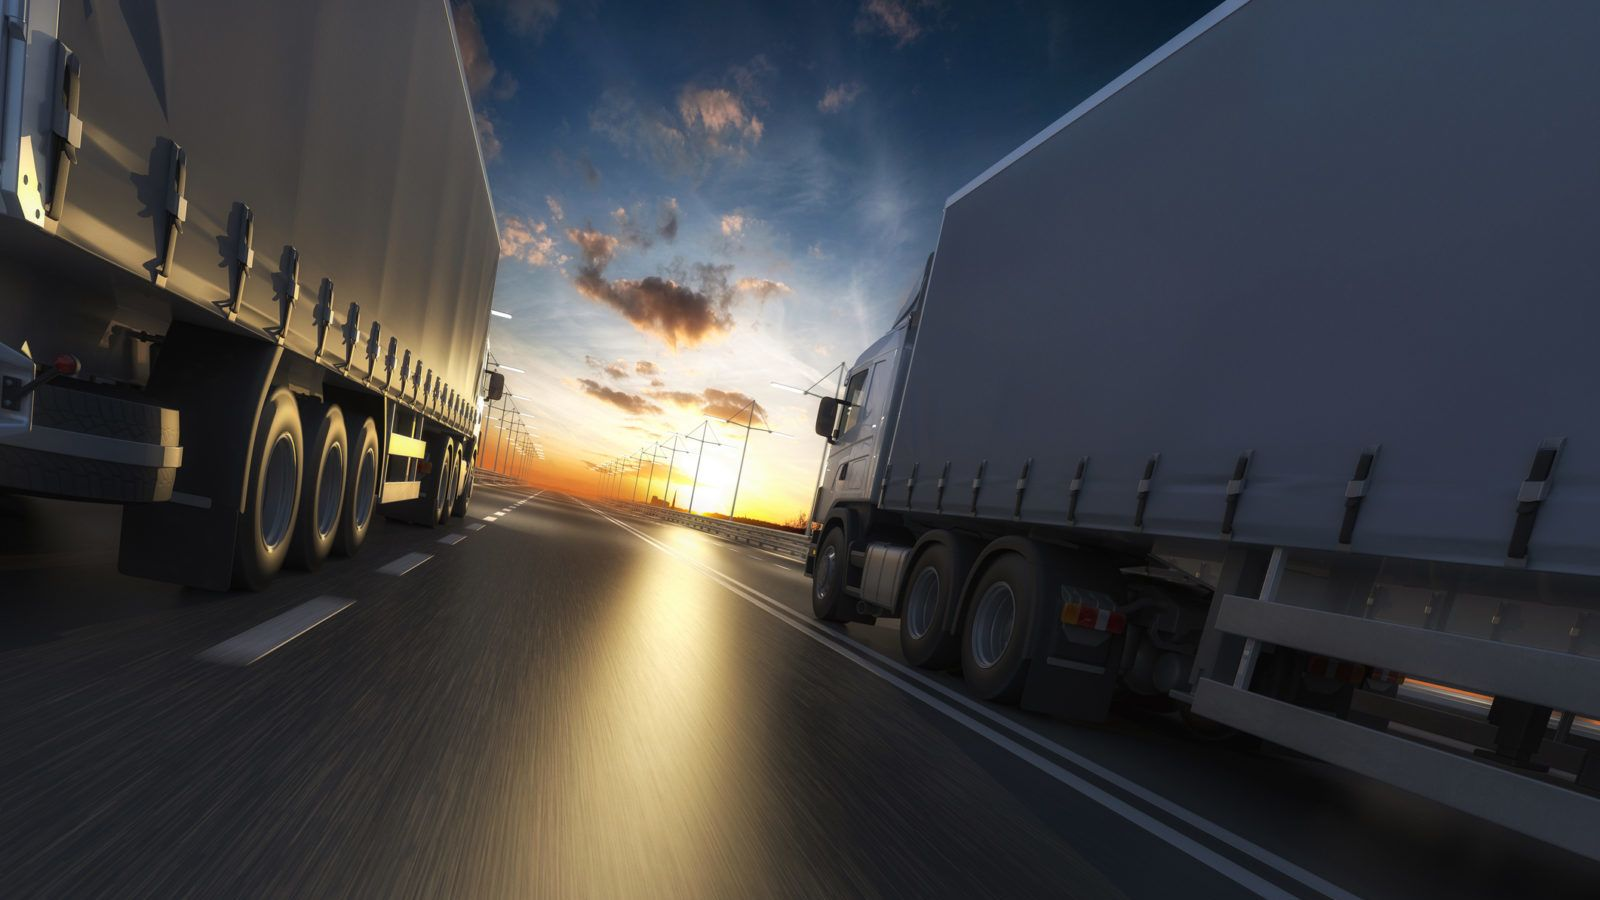 Commercial CDL driver with Accidents What occurs if I have